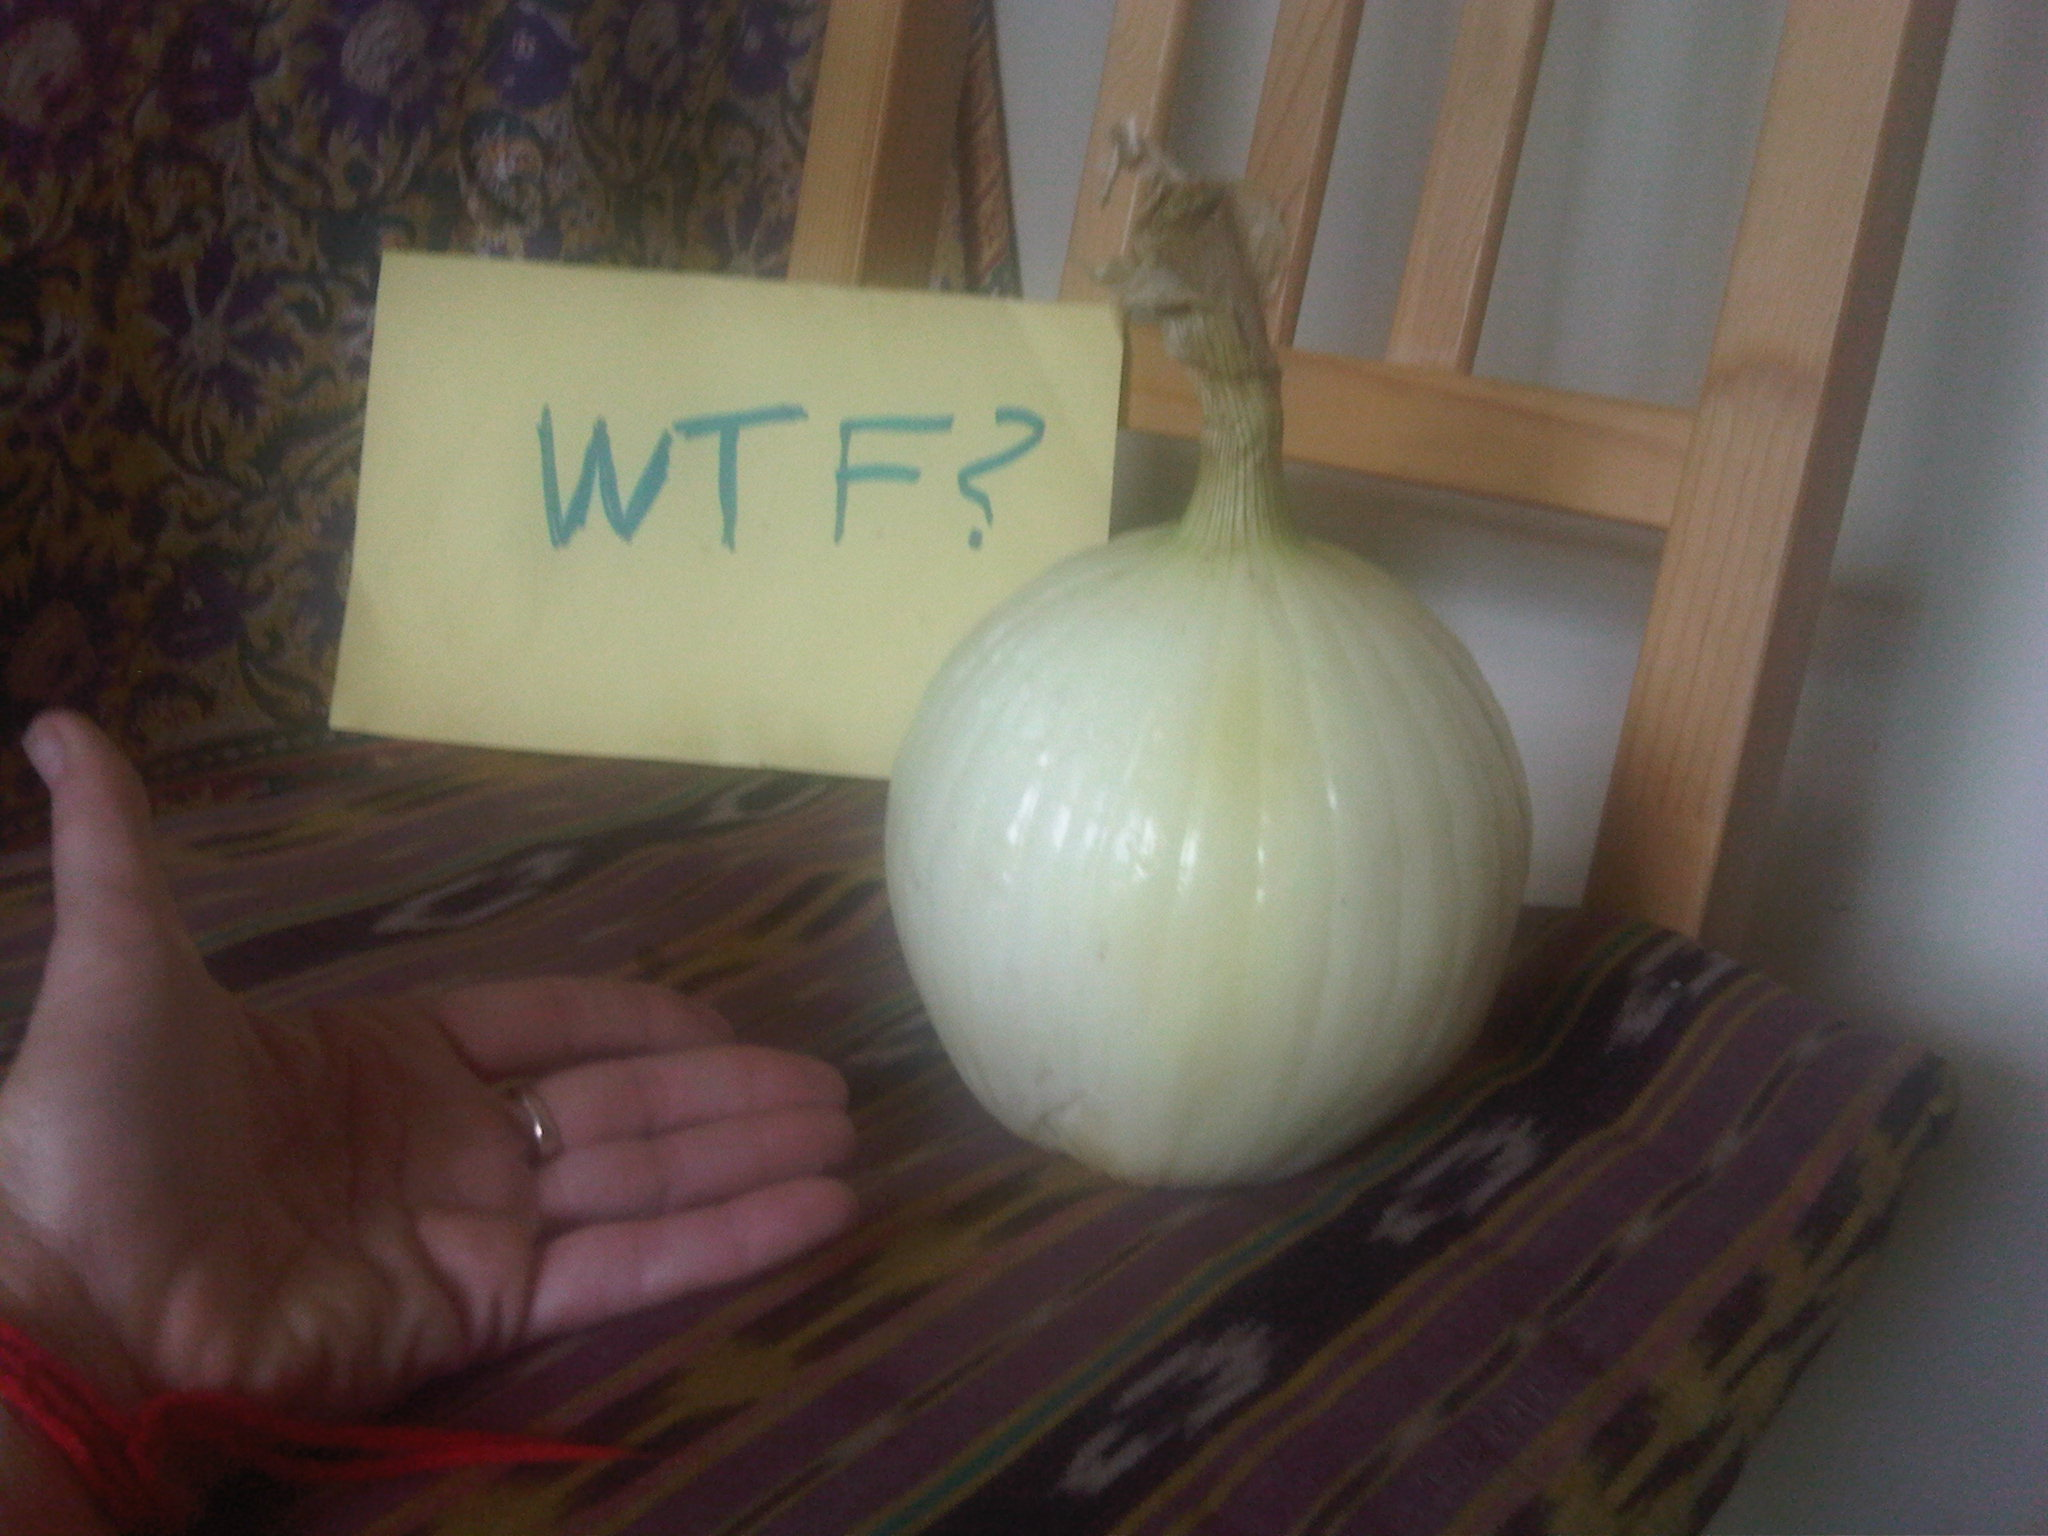 Bigass.onion